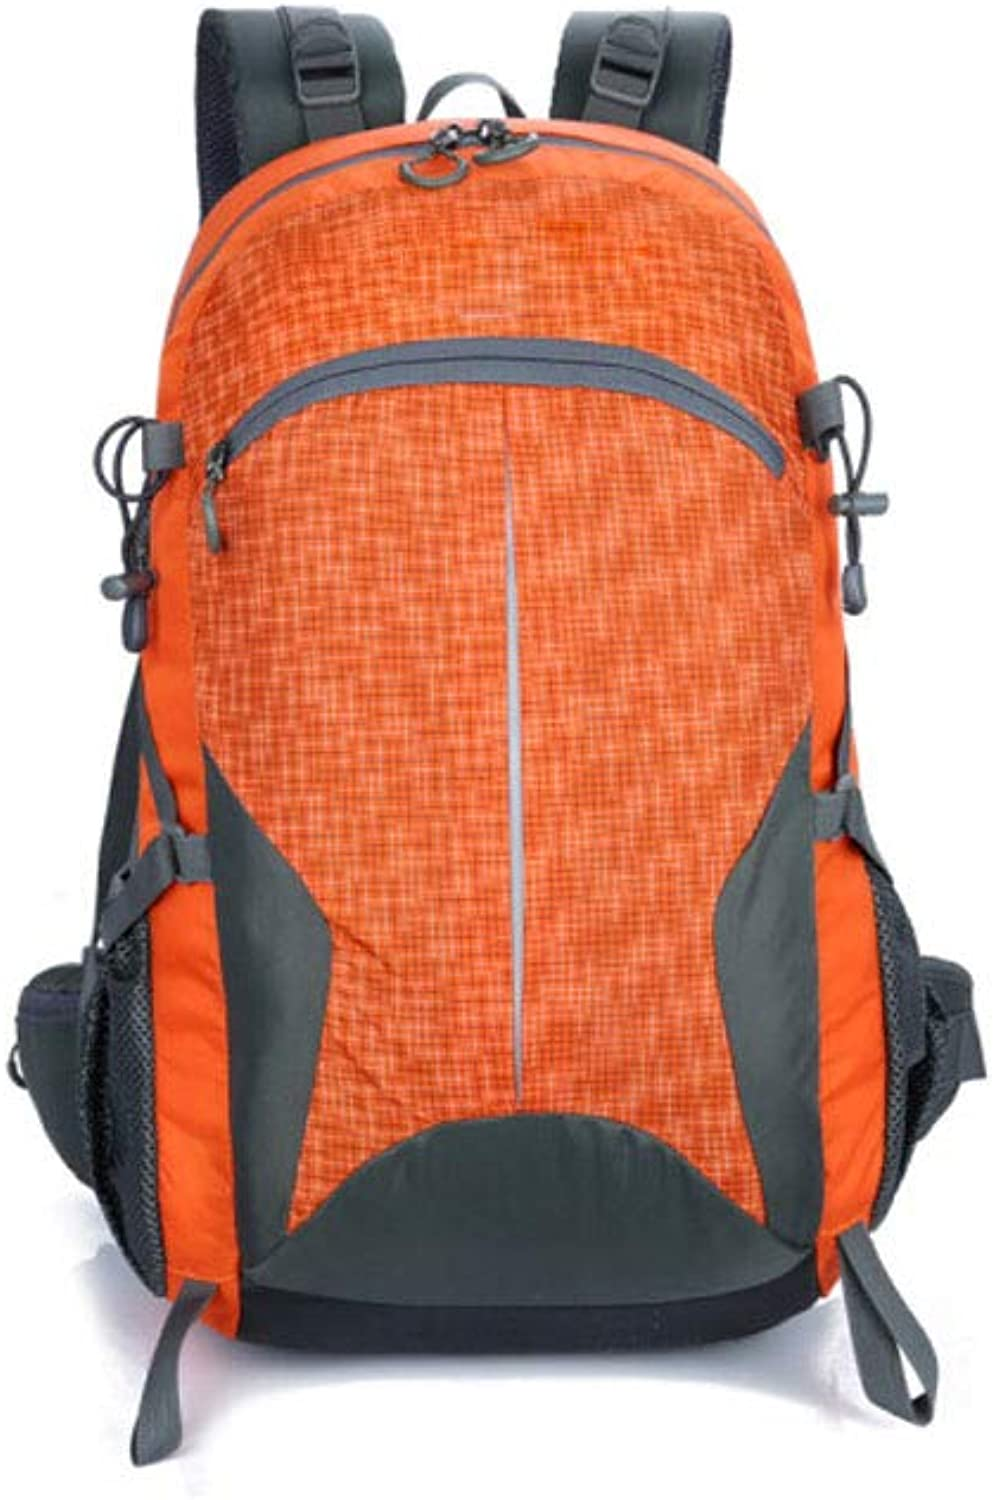 HENG Backpack for Man,Super Breathable and Durable Hiking Backpack, Green for Hiking, Traveling & Camping (color   orange)